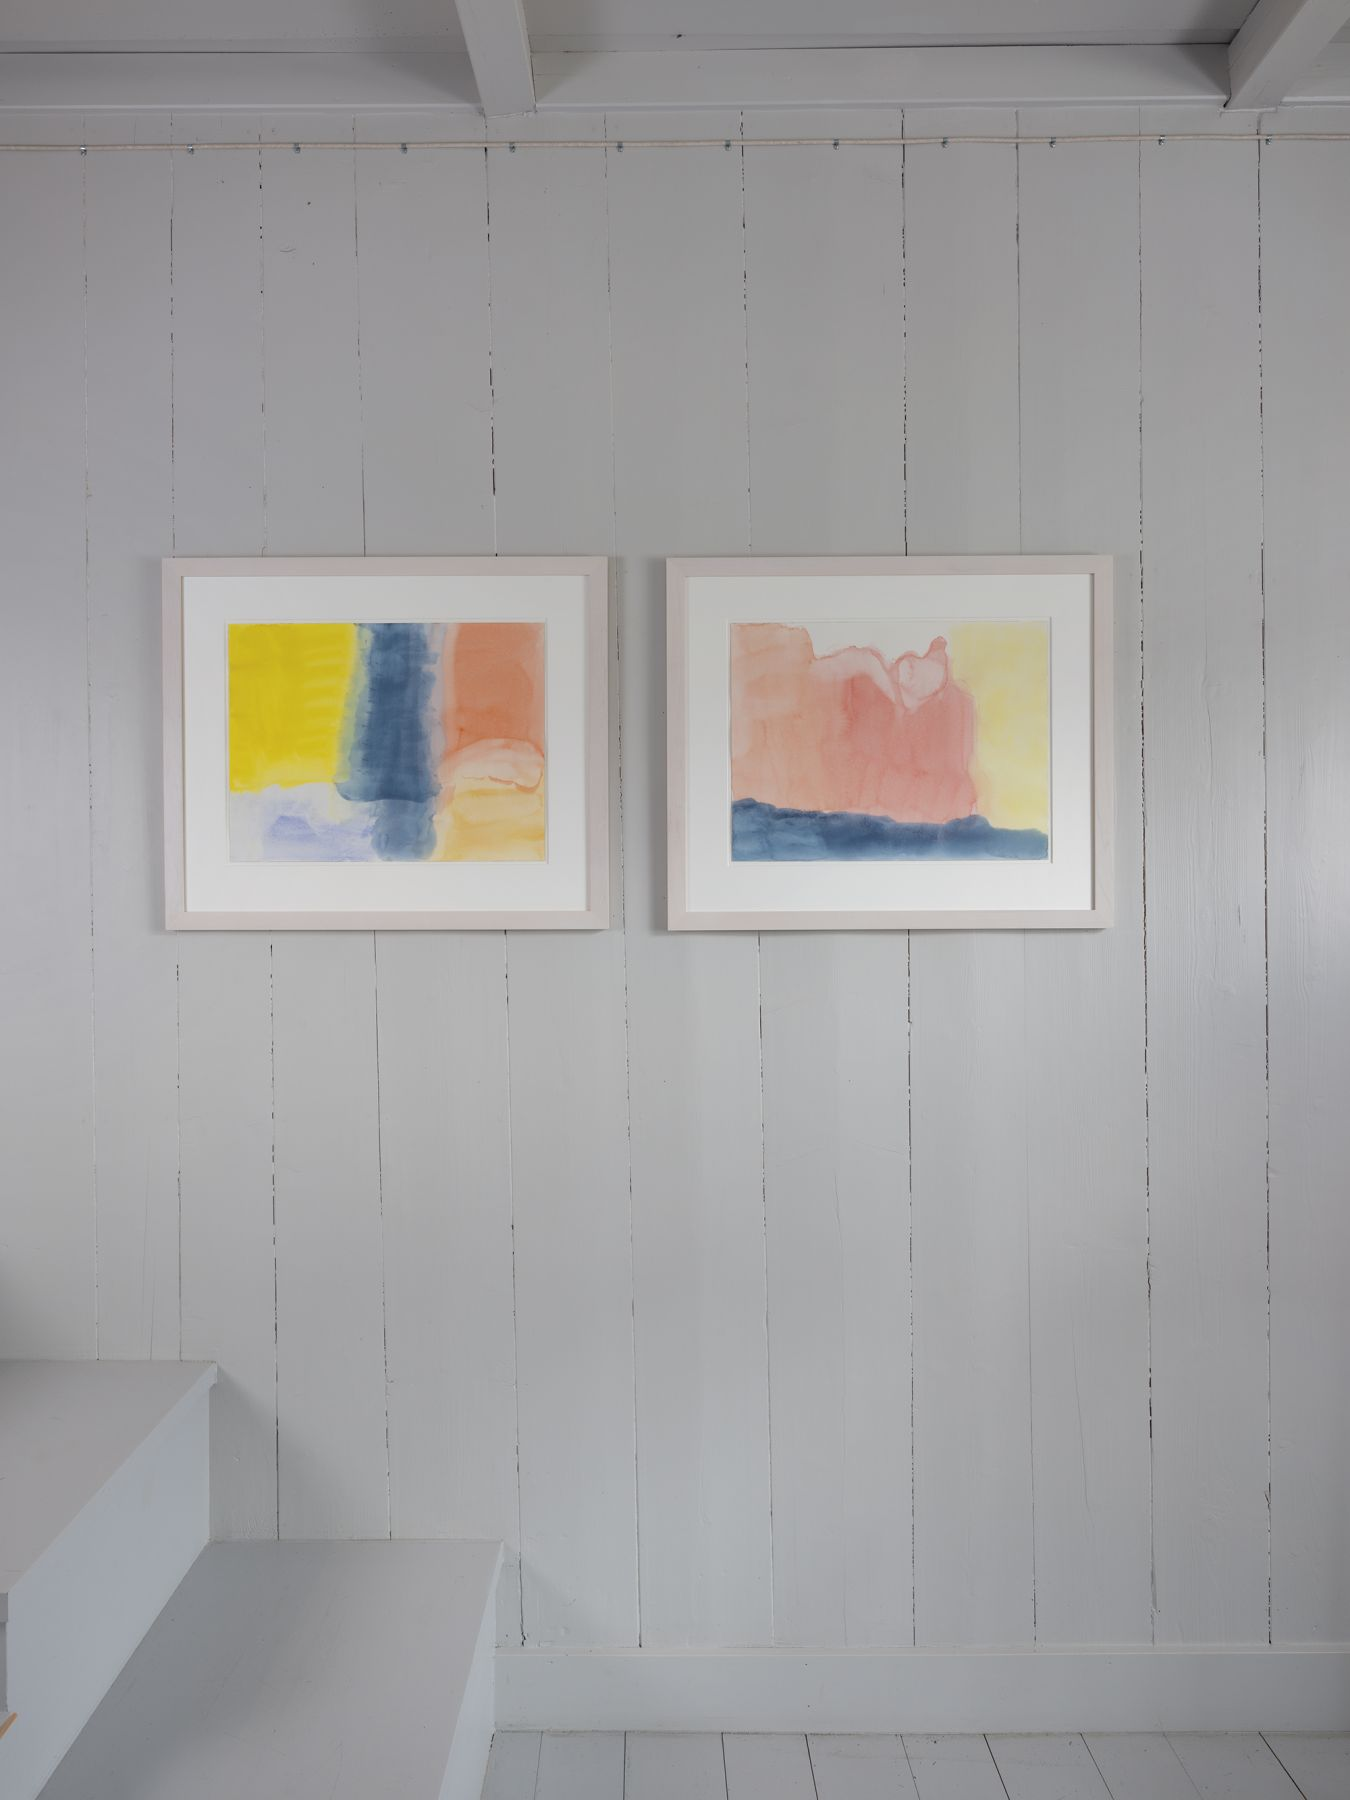 Markus Döbeli  Untitled, 2015 and Untitled 2015  both Watercolors on paper  46 x 61 cm  Installation View, OFFSITE: CHALET, Rossinière, Switzerland | Image © Julien Gremaud